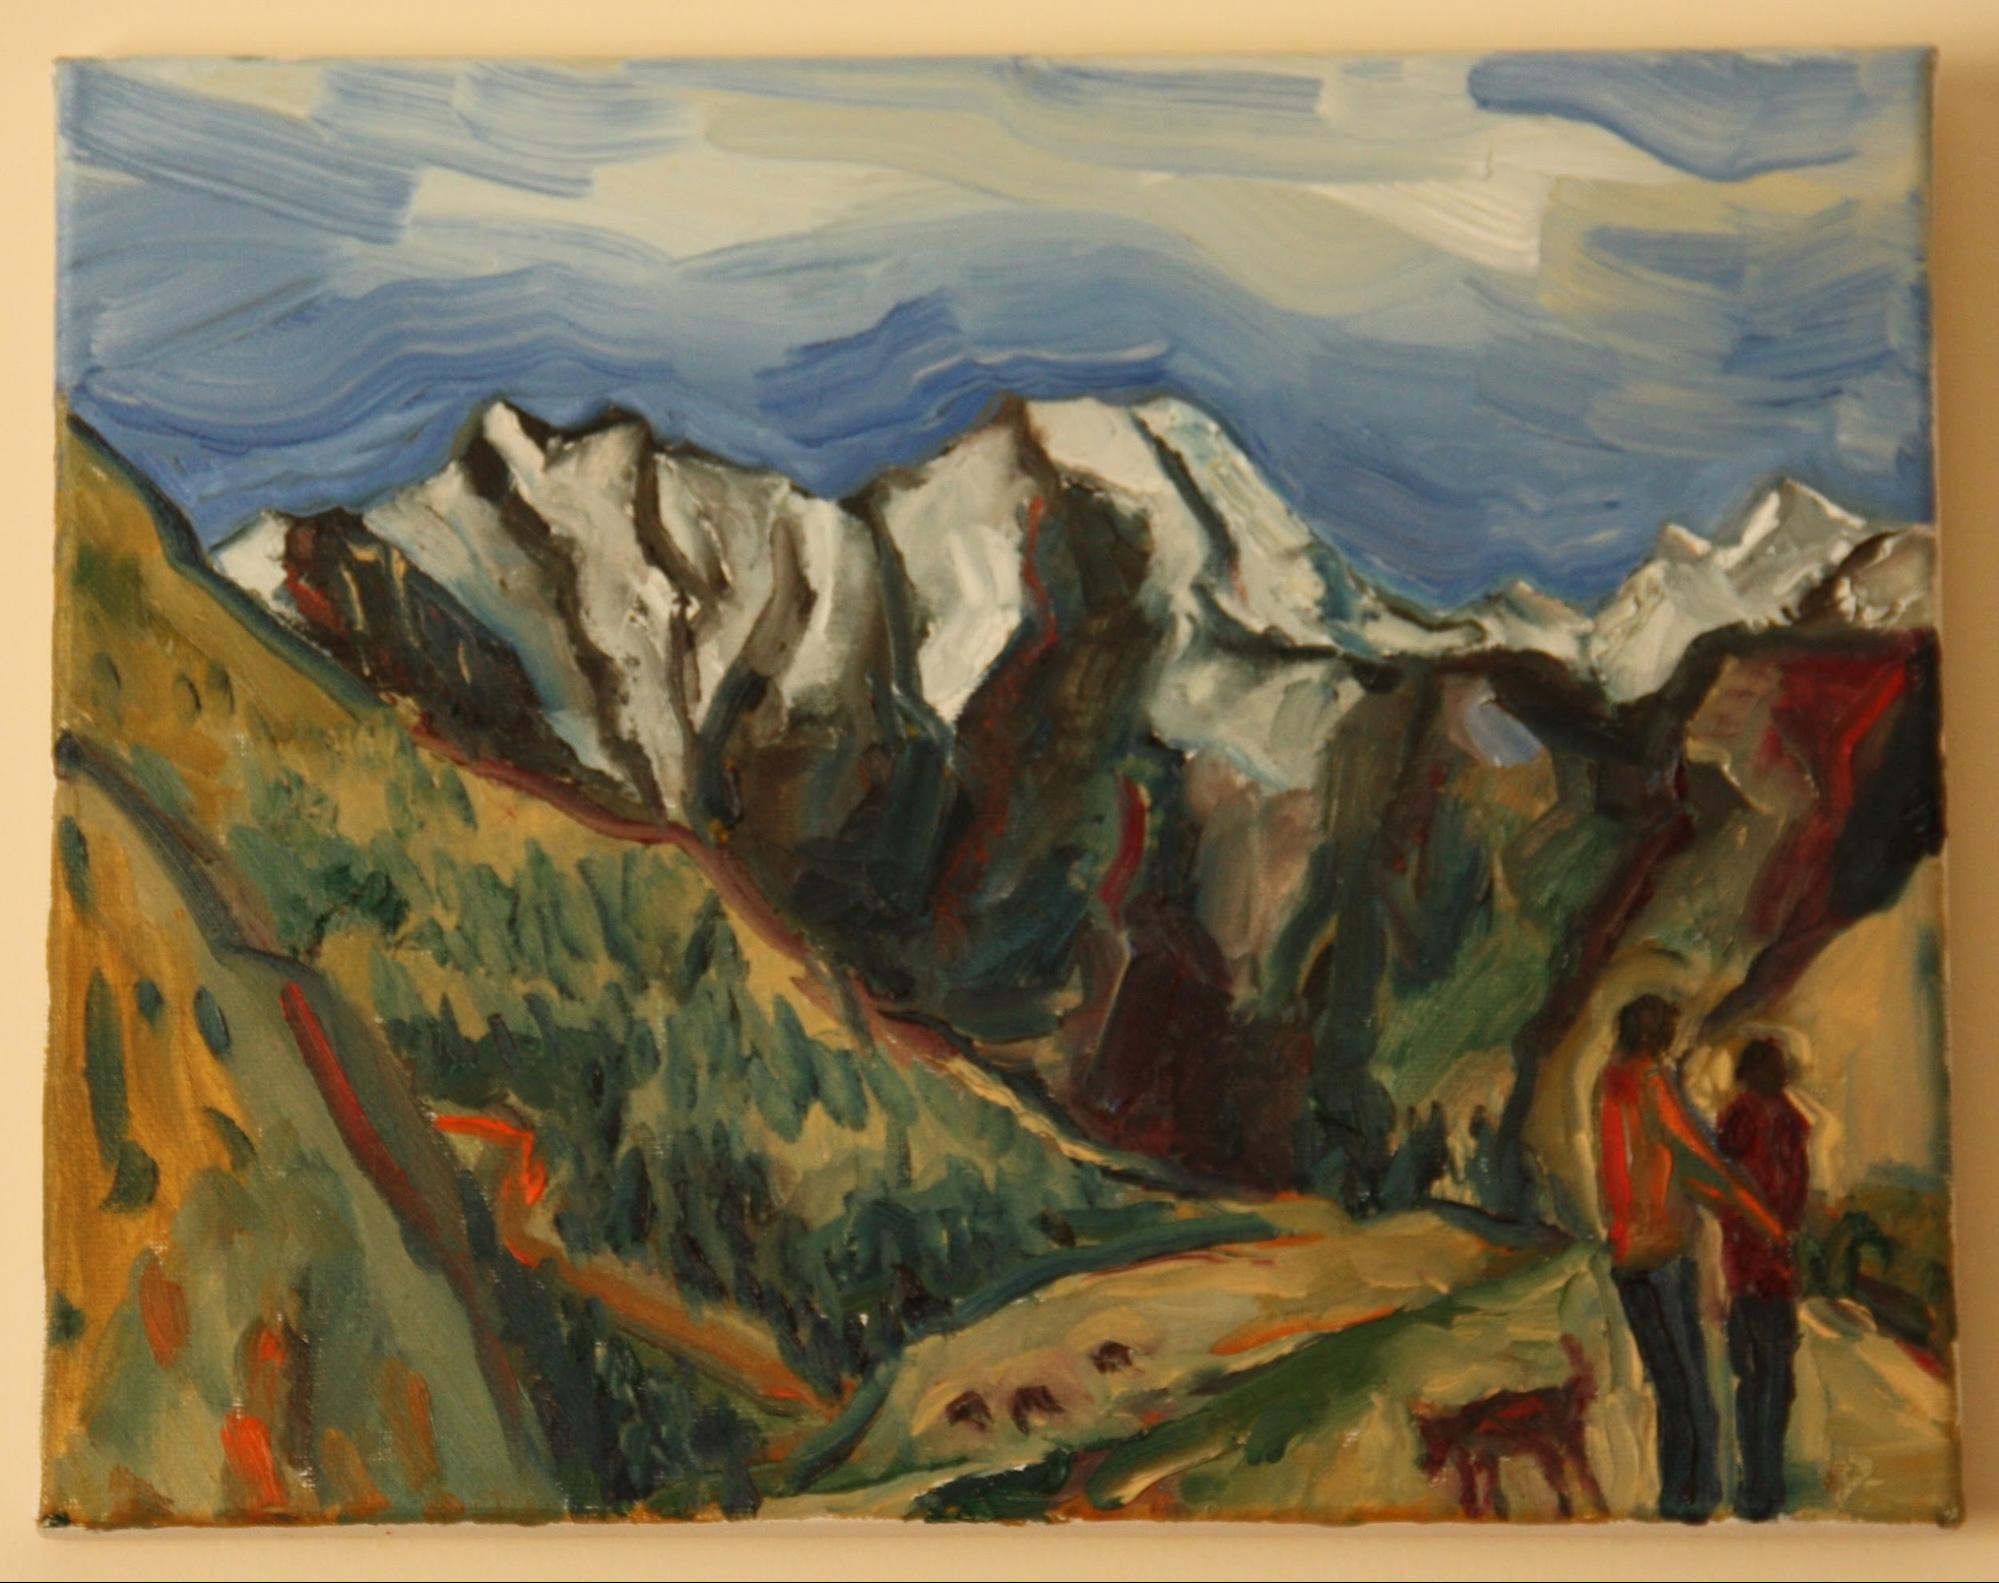 Painting of mountains with yellow/orange tint